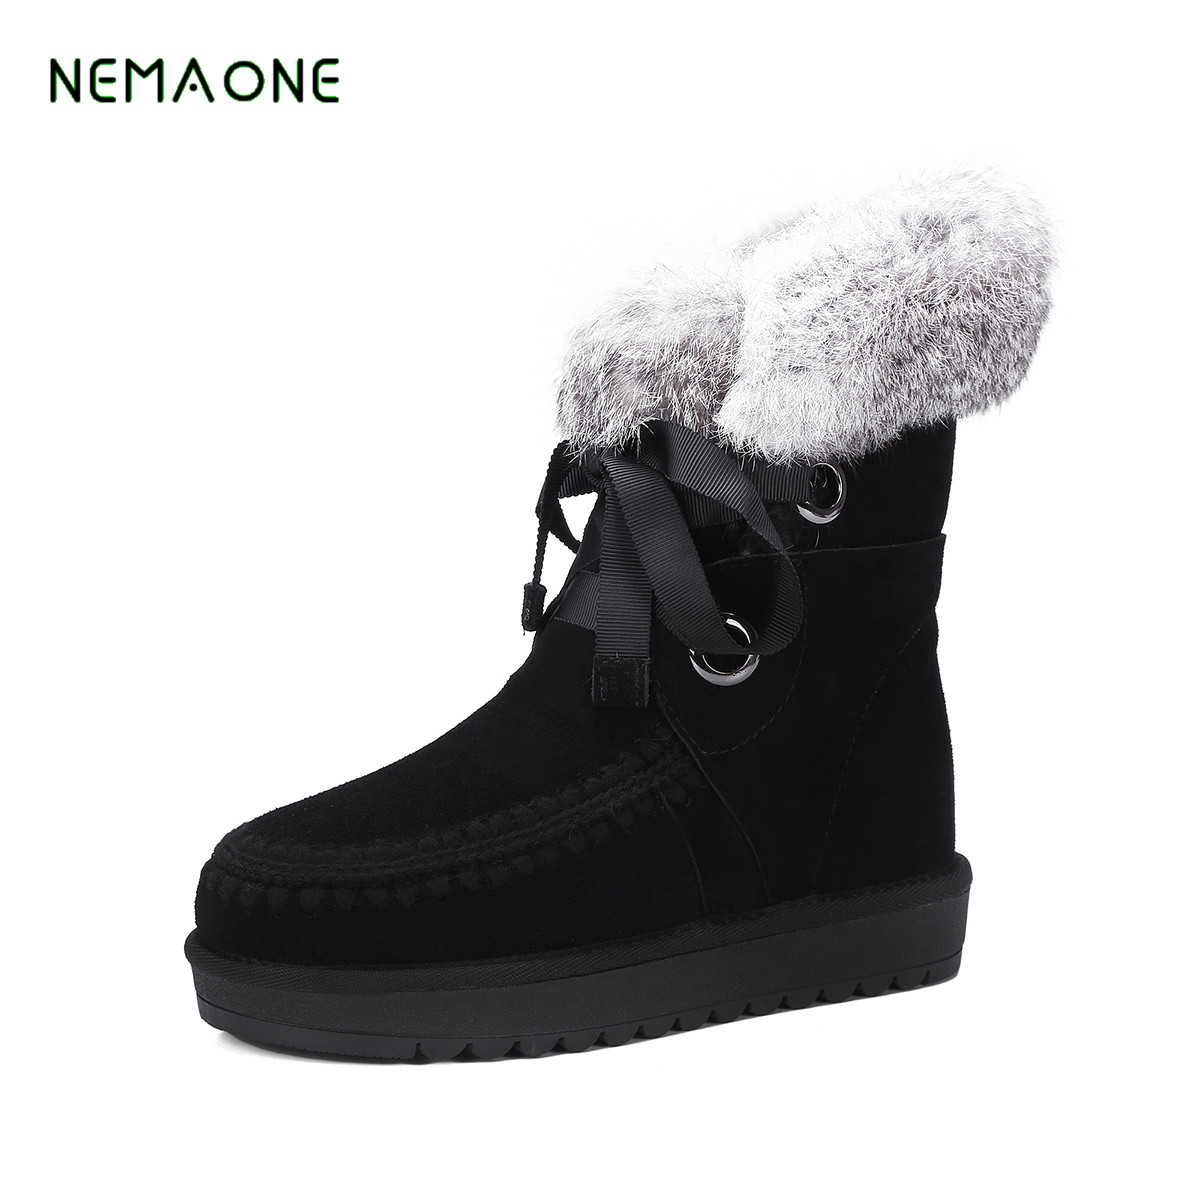 NEMAONE Wool Genuine Leather Women s boots 2017 NEW fashion fur one thick warm snow boots